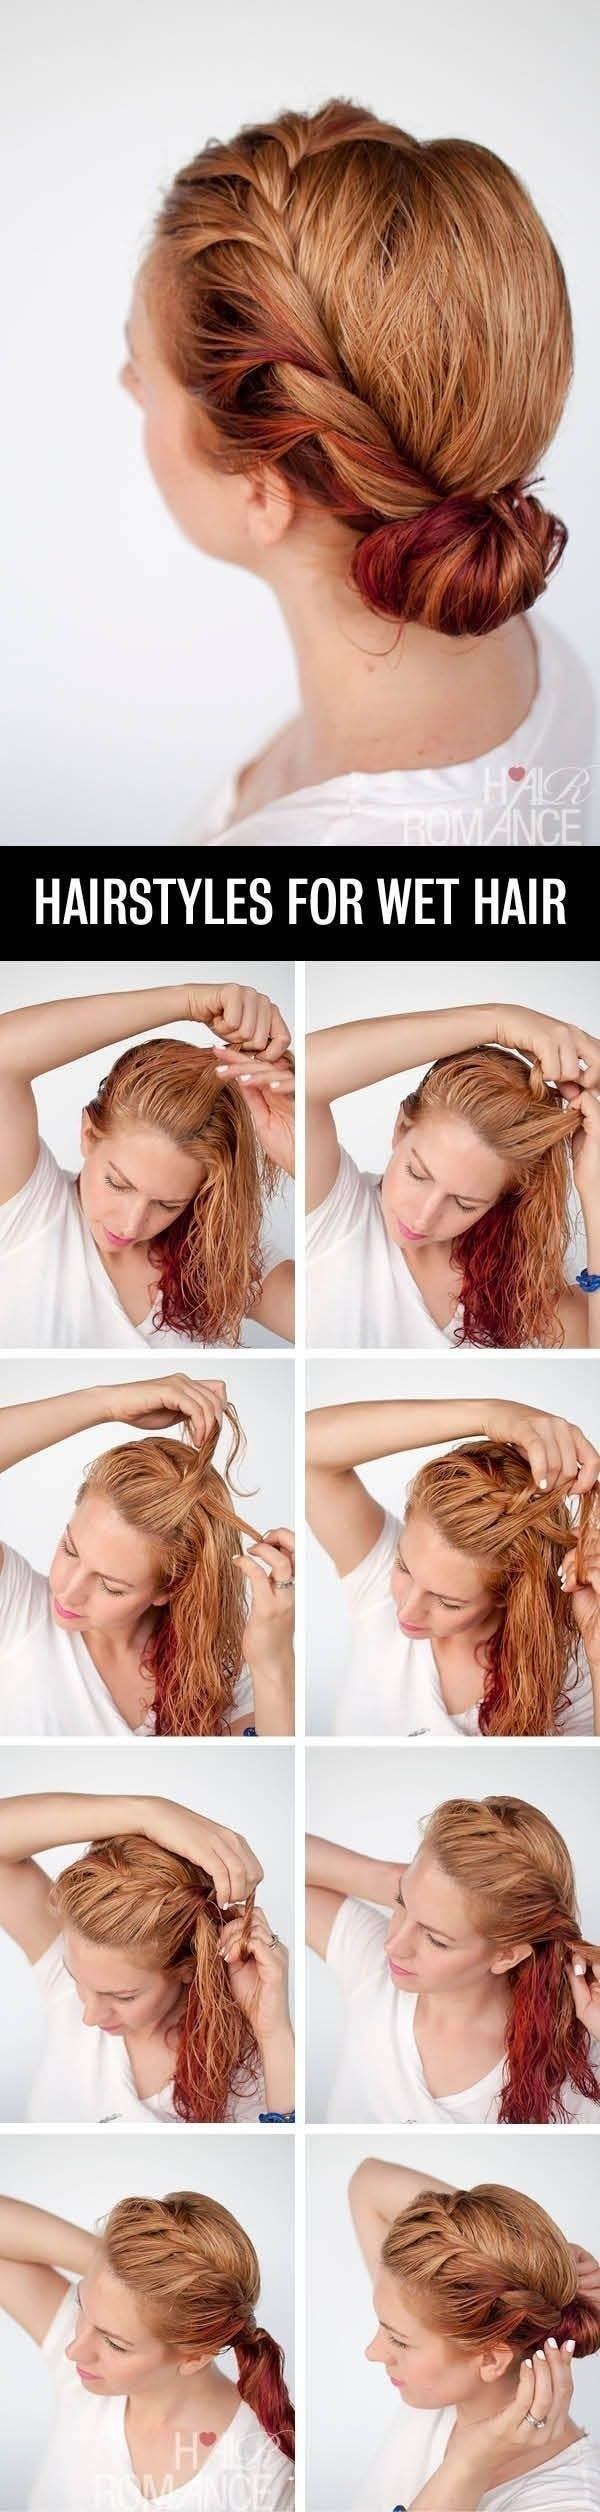 17 Five Minute Hairstyles If You Suck At Doing Your Hair